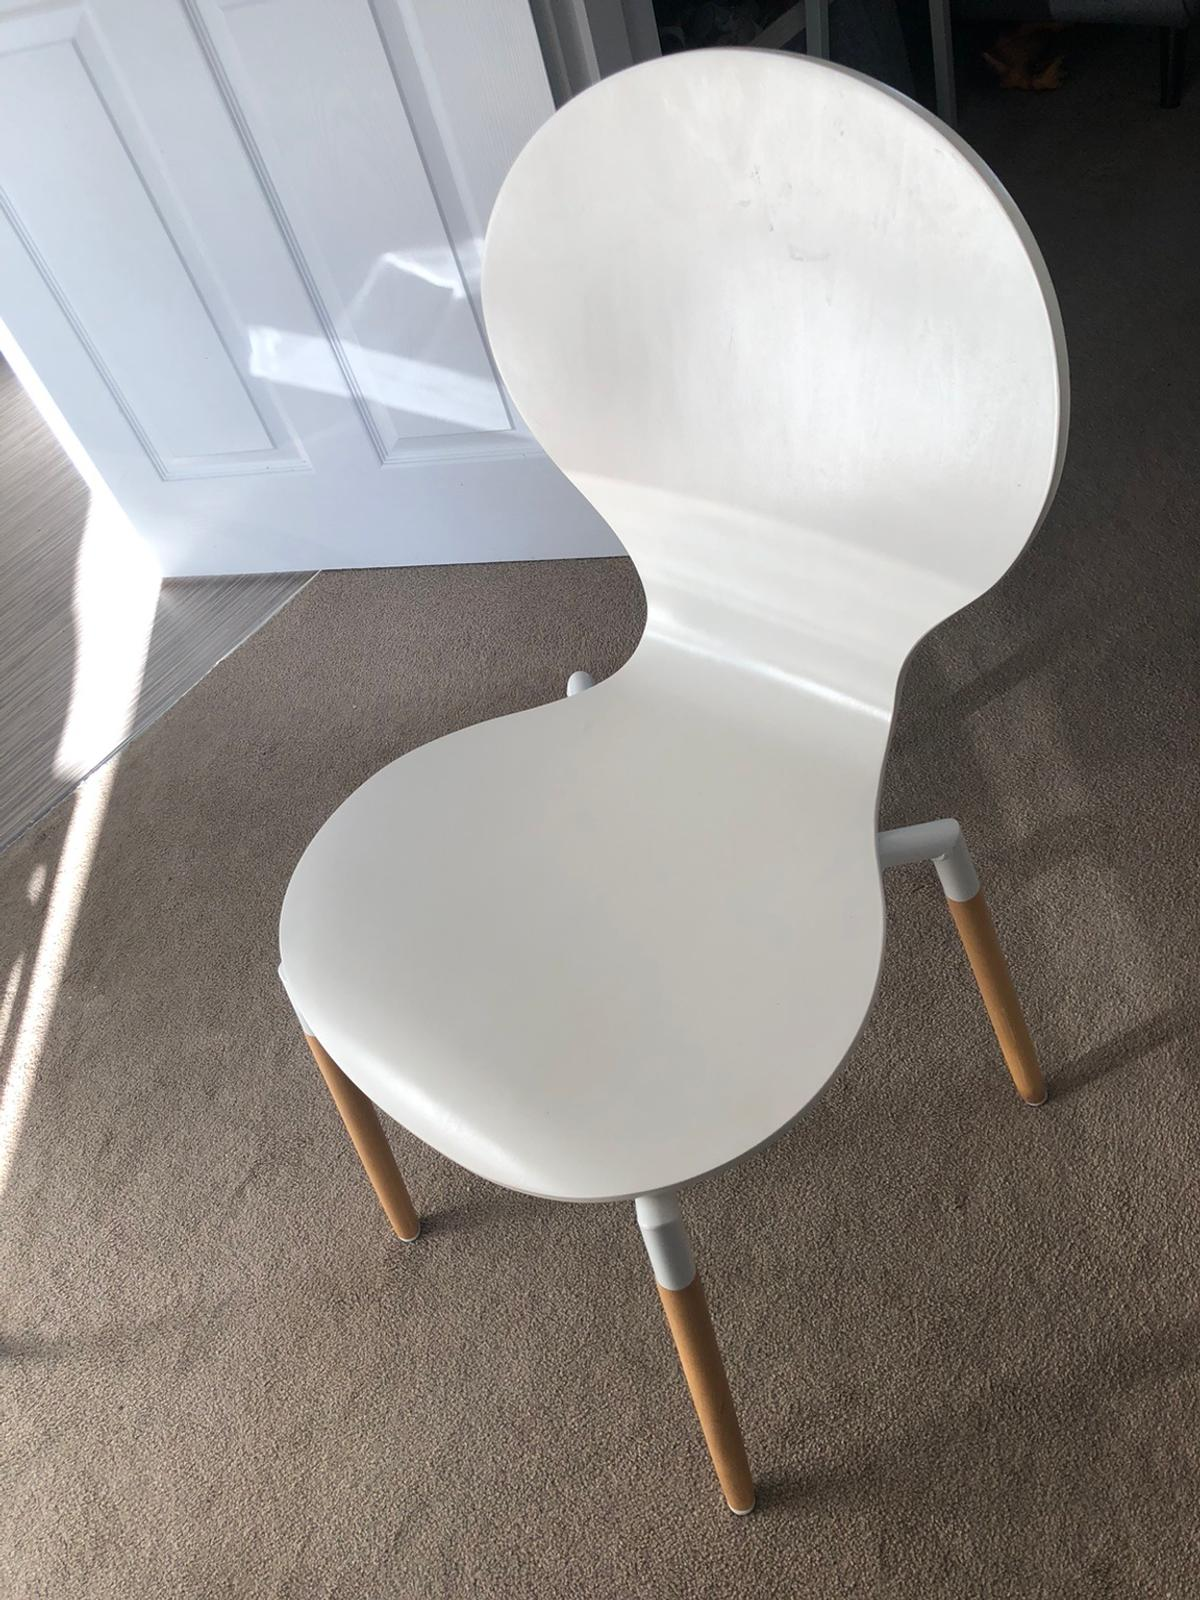 A good,solid dining table in matte white with 4 chairs  Scandinavian style  In overall good condition - perfect for a small space  There are small wear and tear marks - the main being a tiny Nick on the table top (see pic)  L 121cm x W 66cm Feet adjustable for height  Table disassembled for transport - easy to put back together.